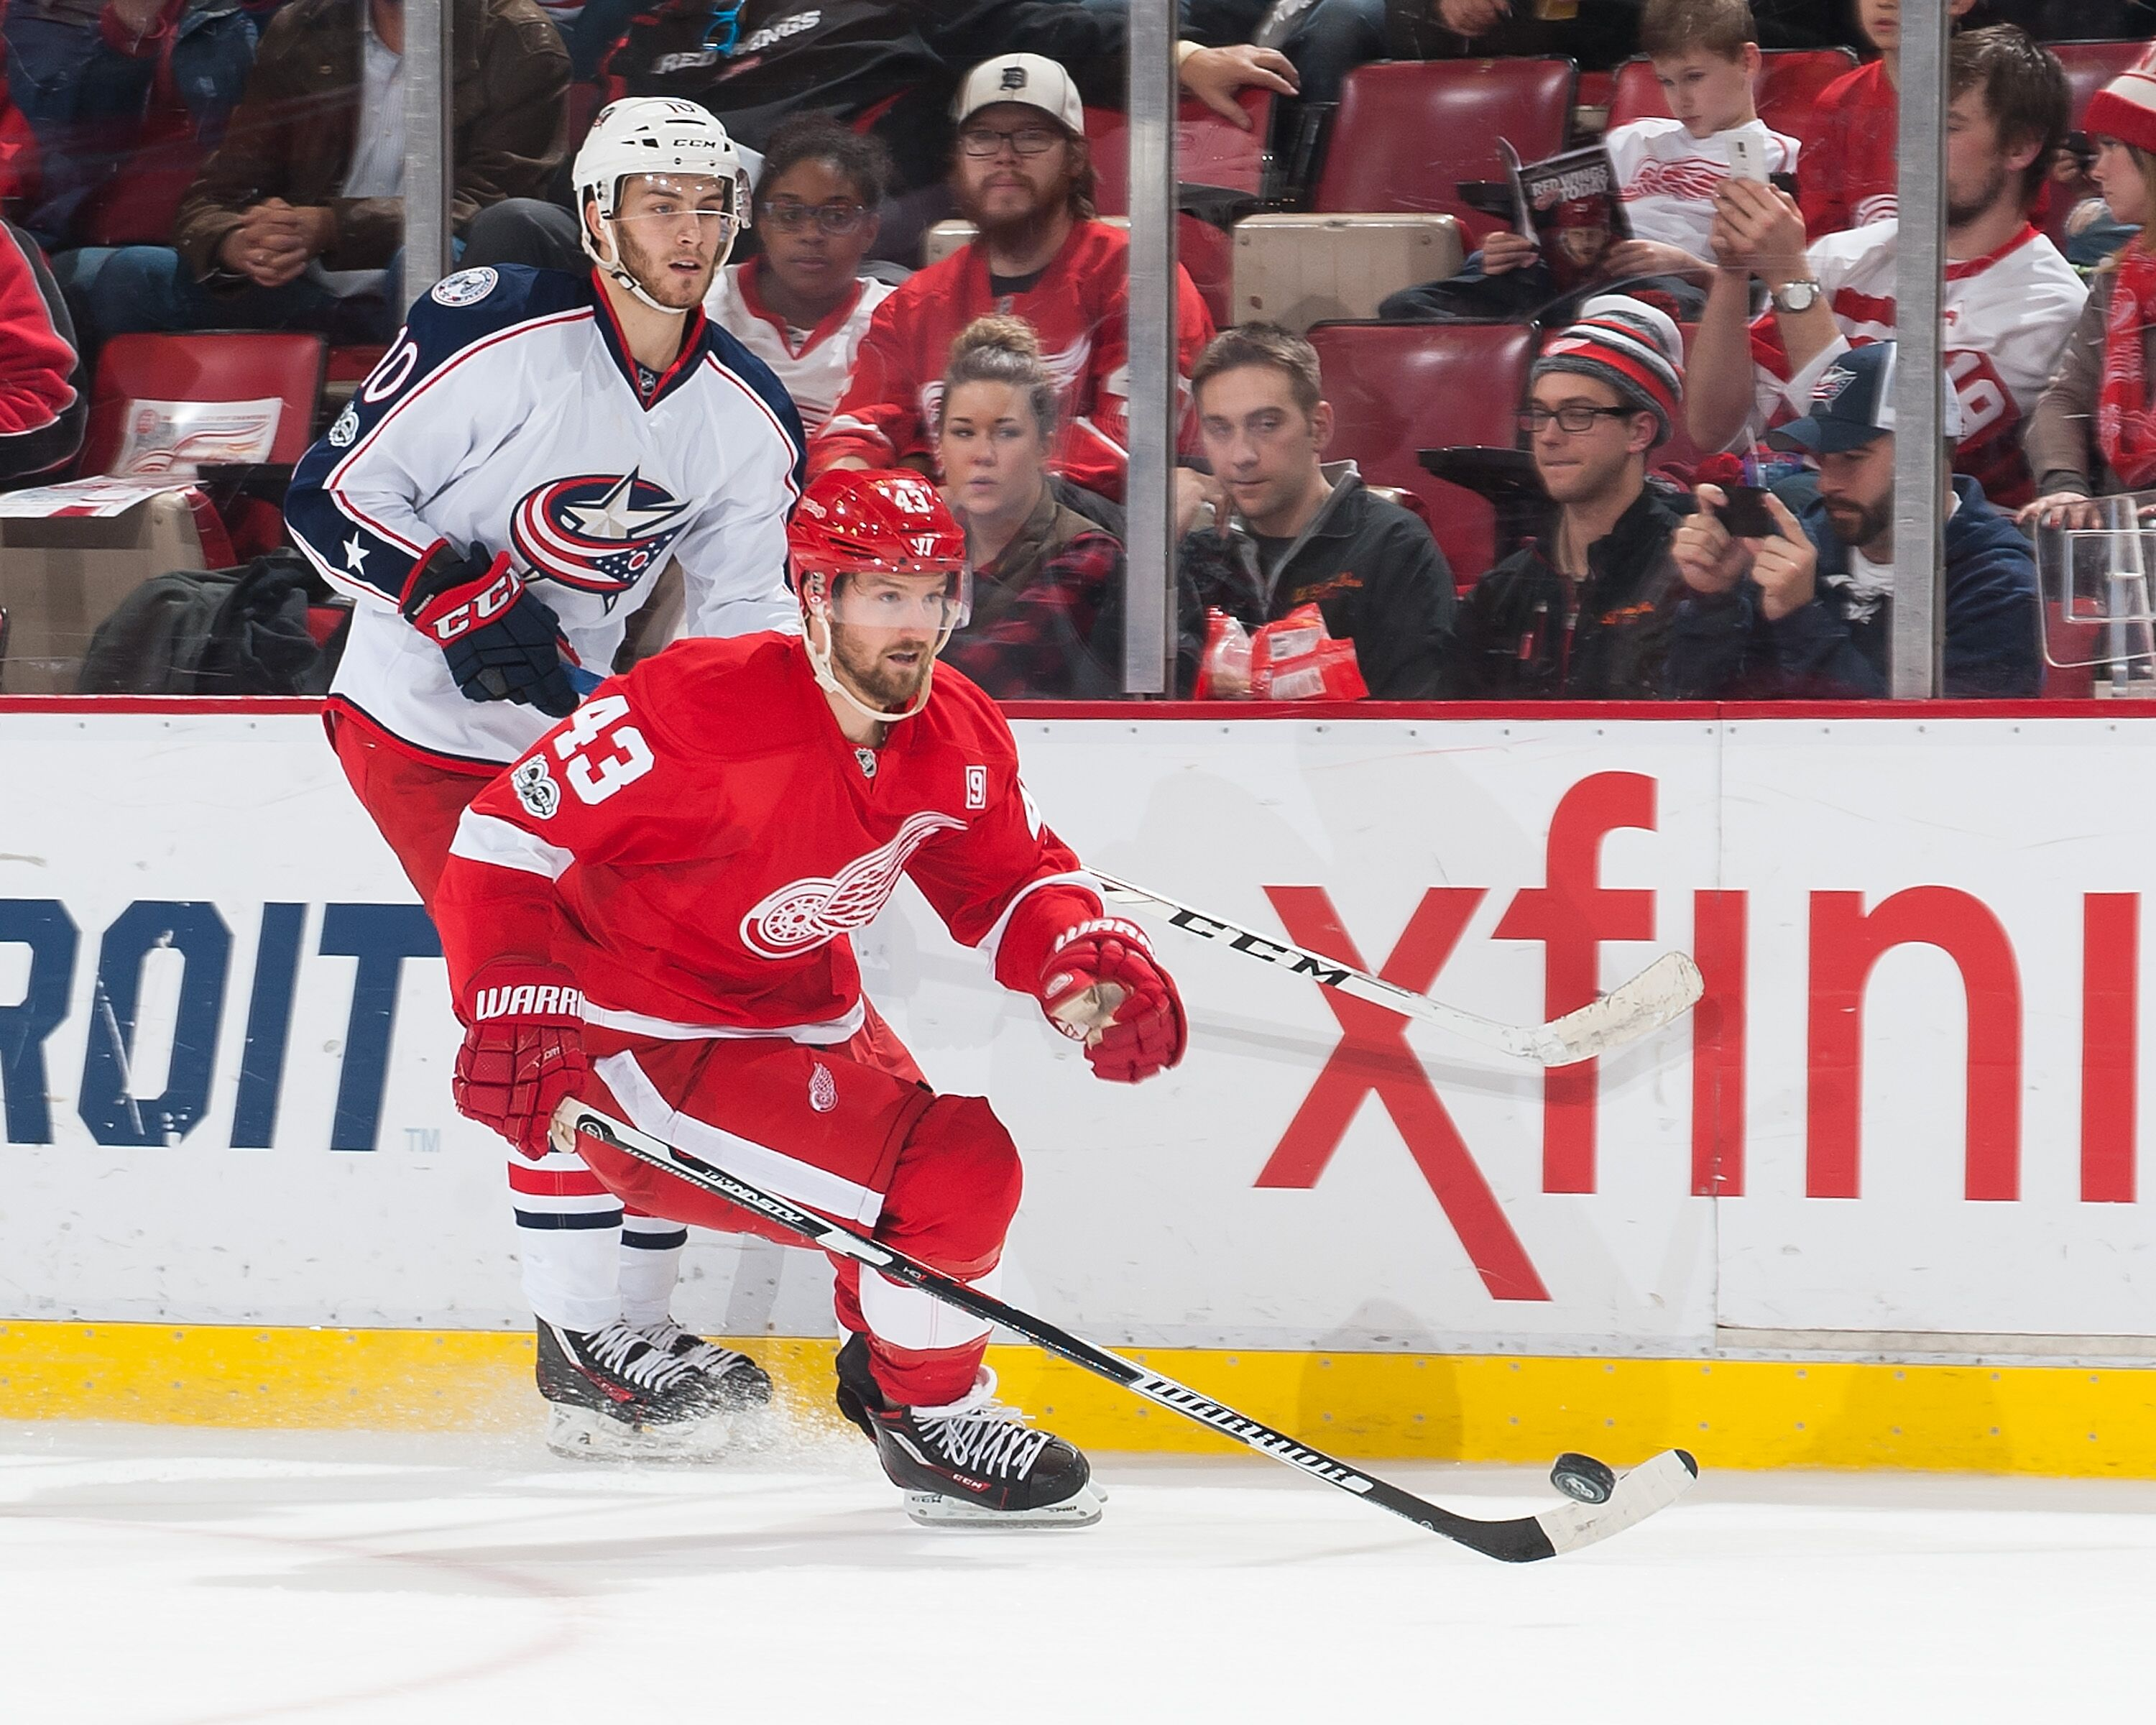 641606992-columbus-blue-jackets-v-detroit-red-wings.jpg